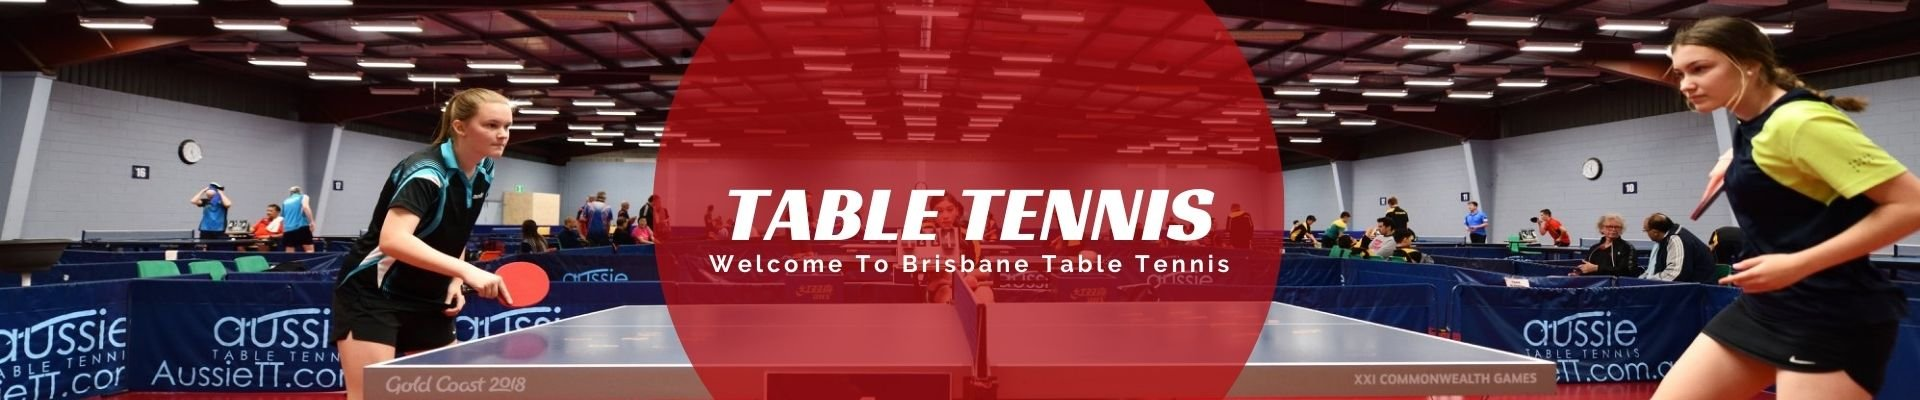 table tennis for 2021